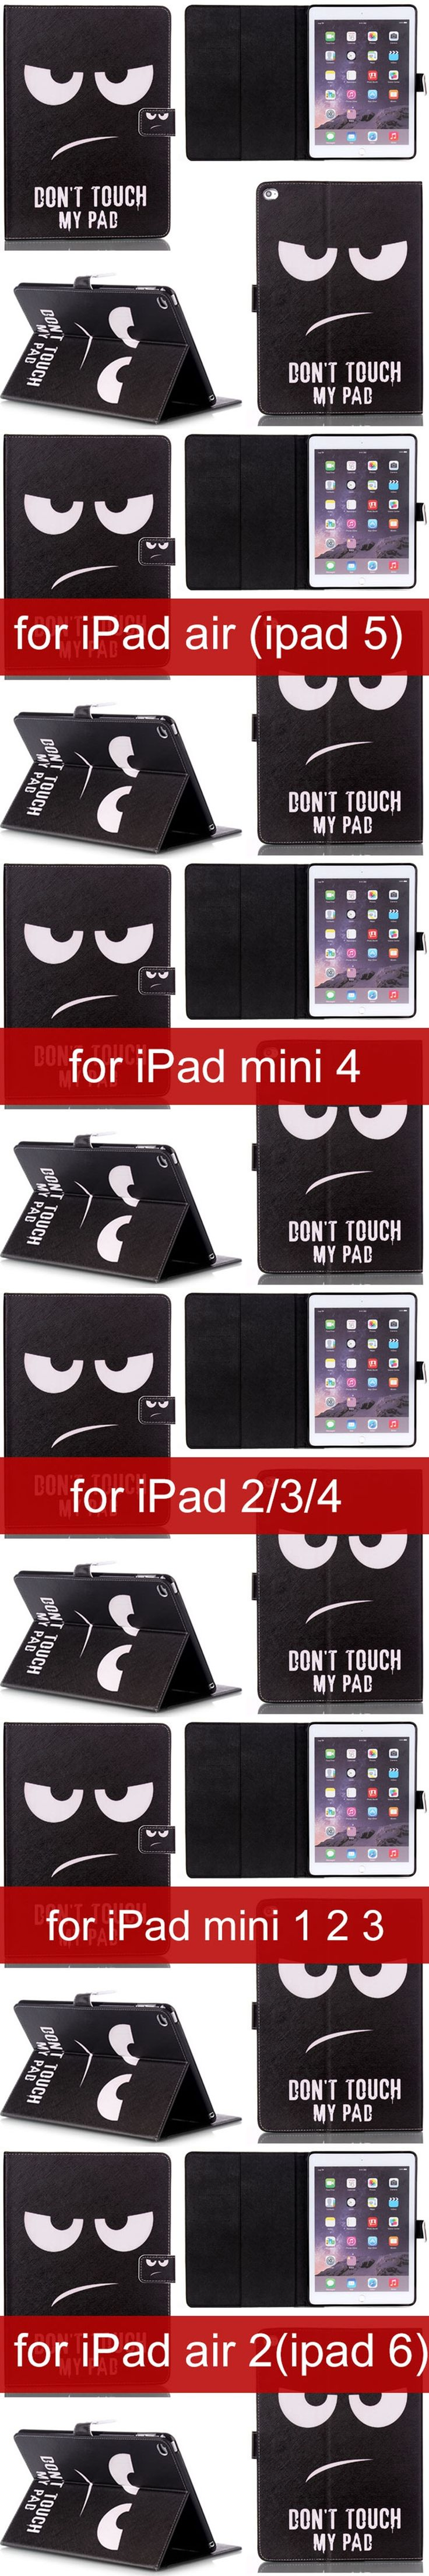 """Black PU Leather cover for Apple iPad air 2 for  iPad mini 1 2 3 4 for iPad 2 3 4 5 6 for iPad Pro 9.7 12.9"""" tablet Cases Y2A14D"""